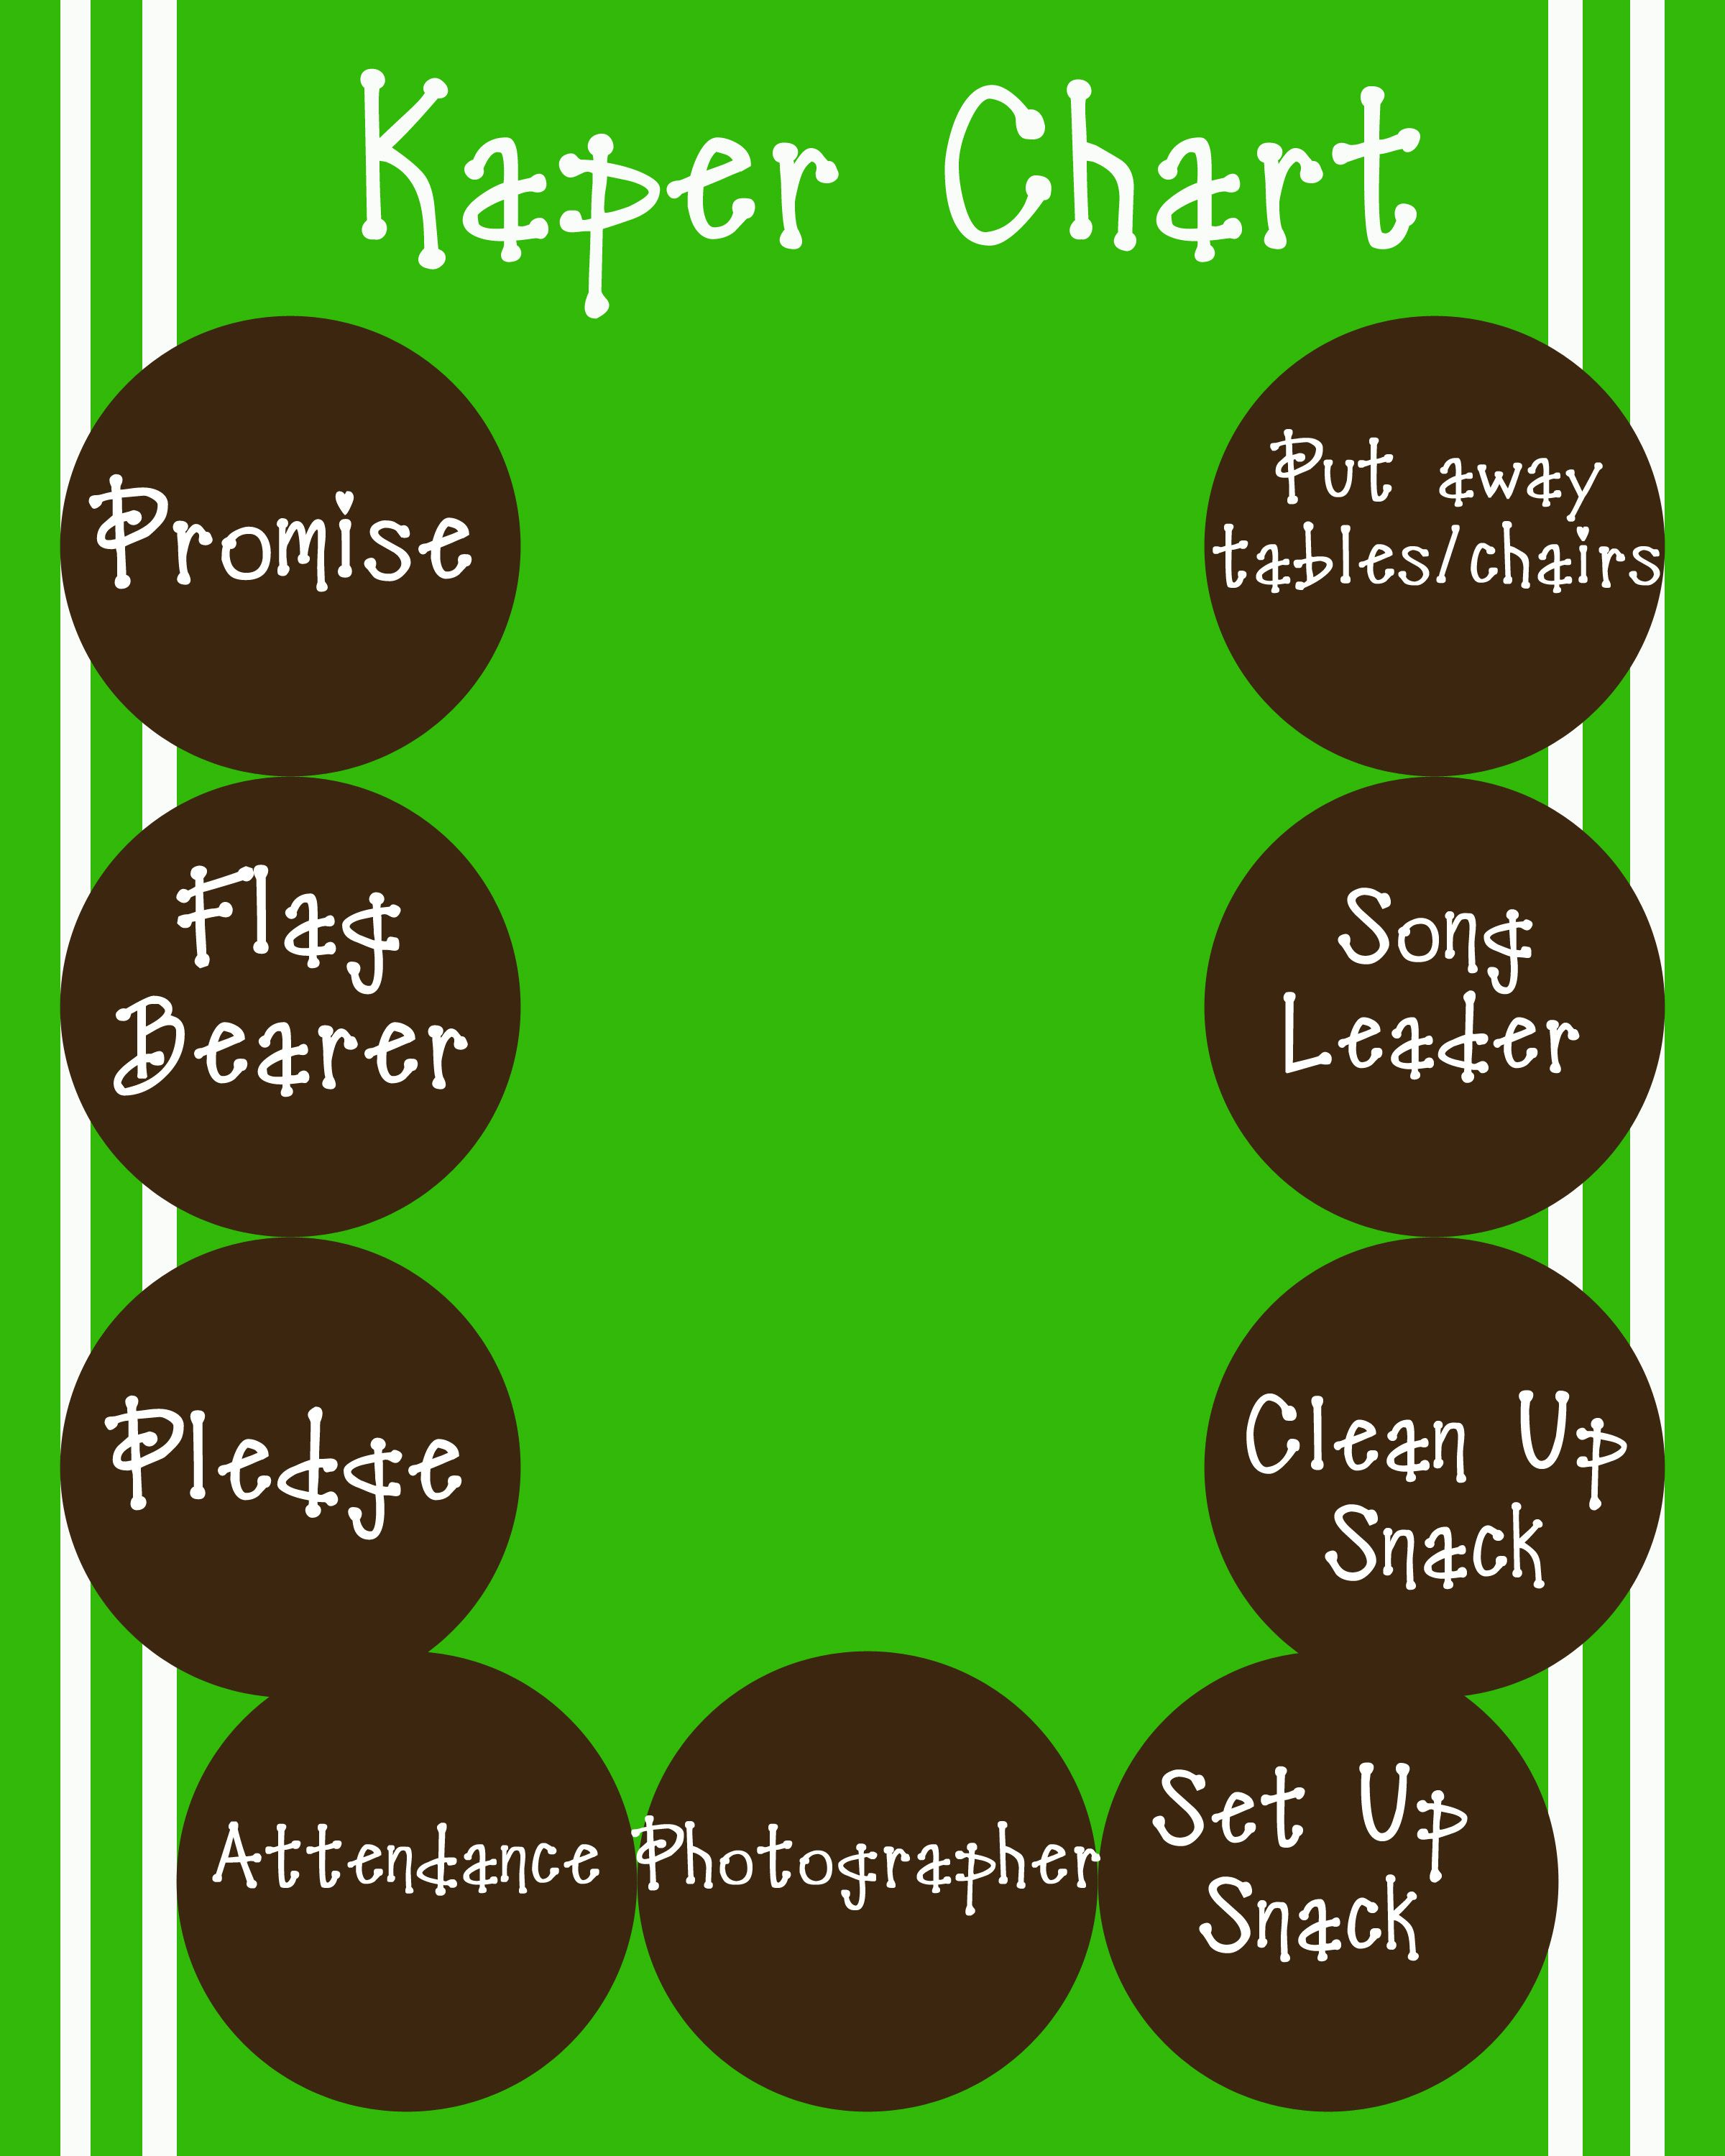 Kaper chart    going to print as an  and mount on cardboard then put their names clothespins clip the also rh pinterest